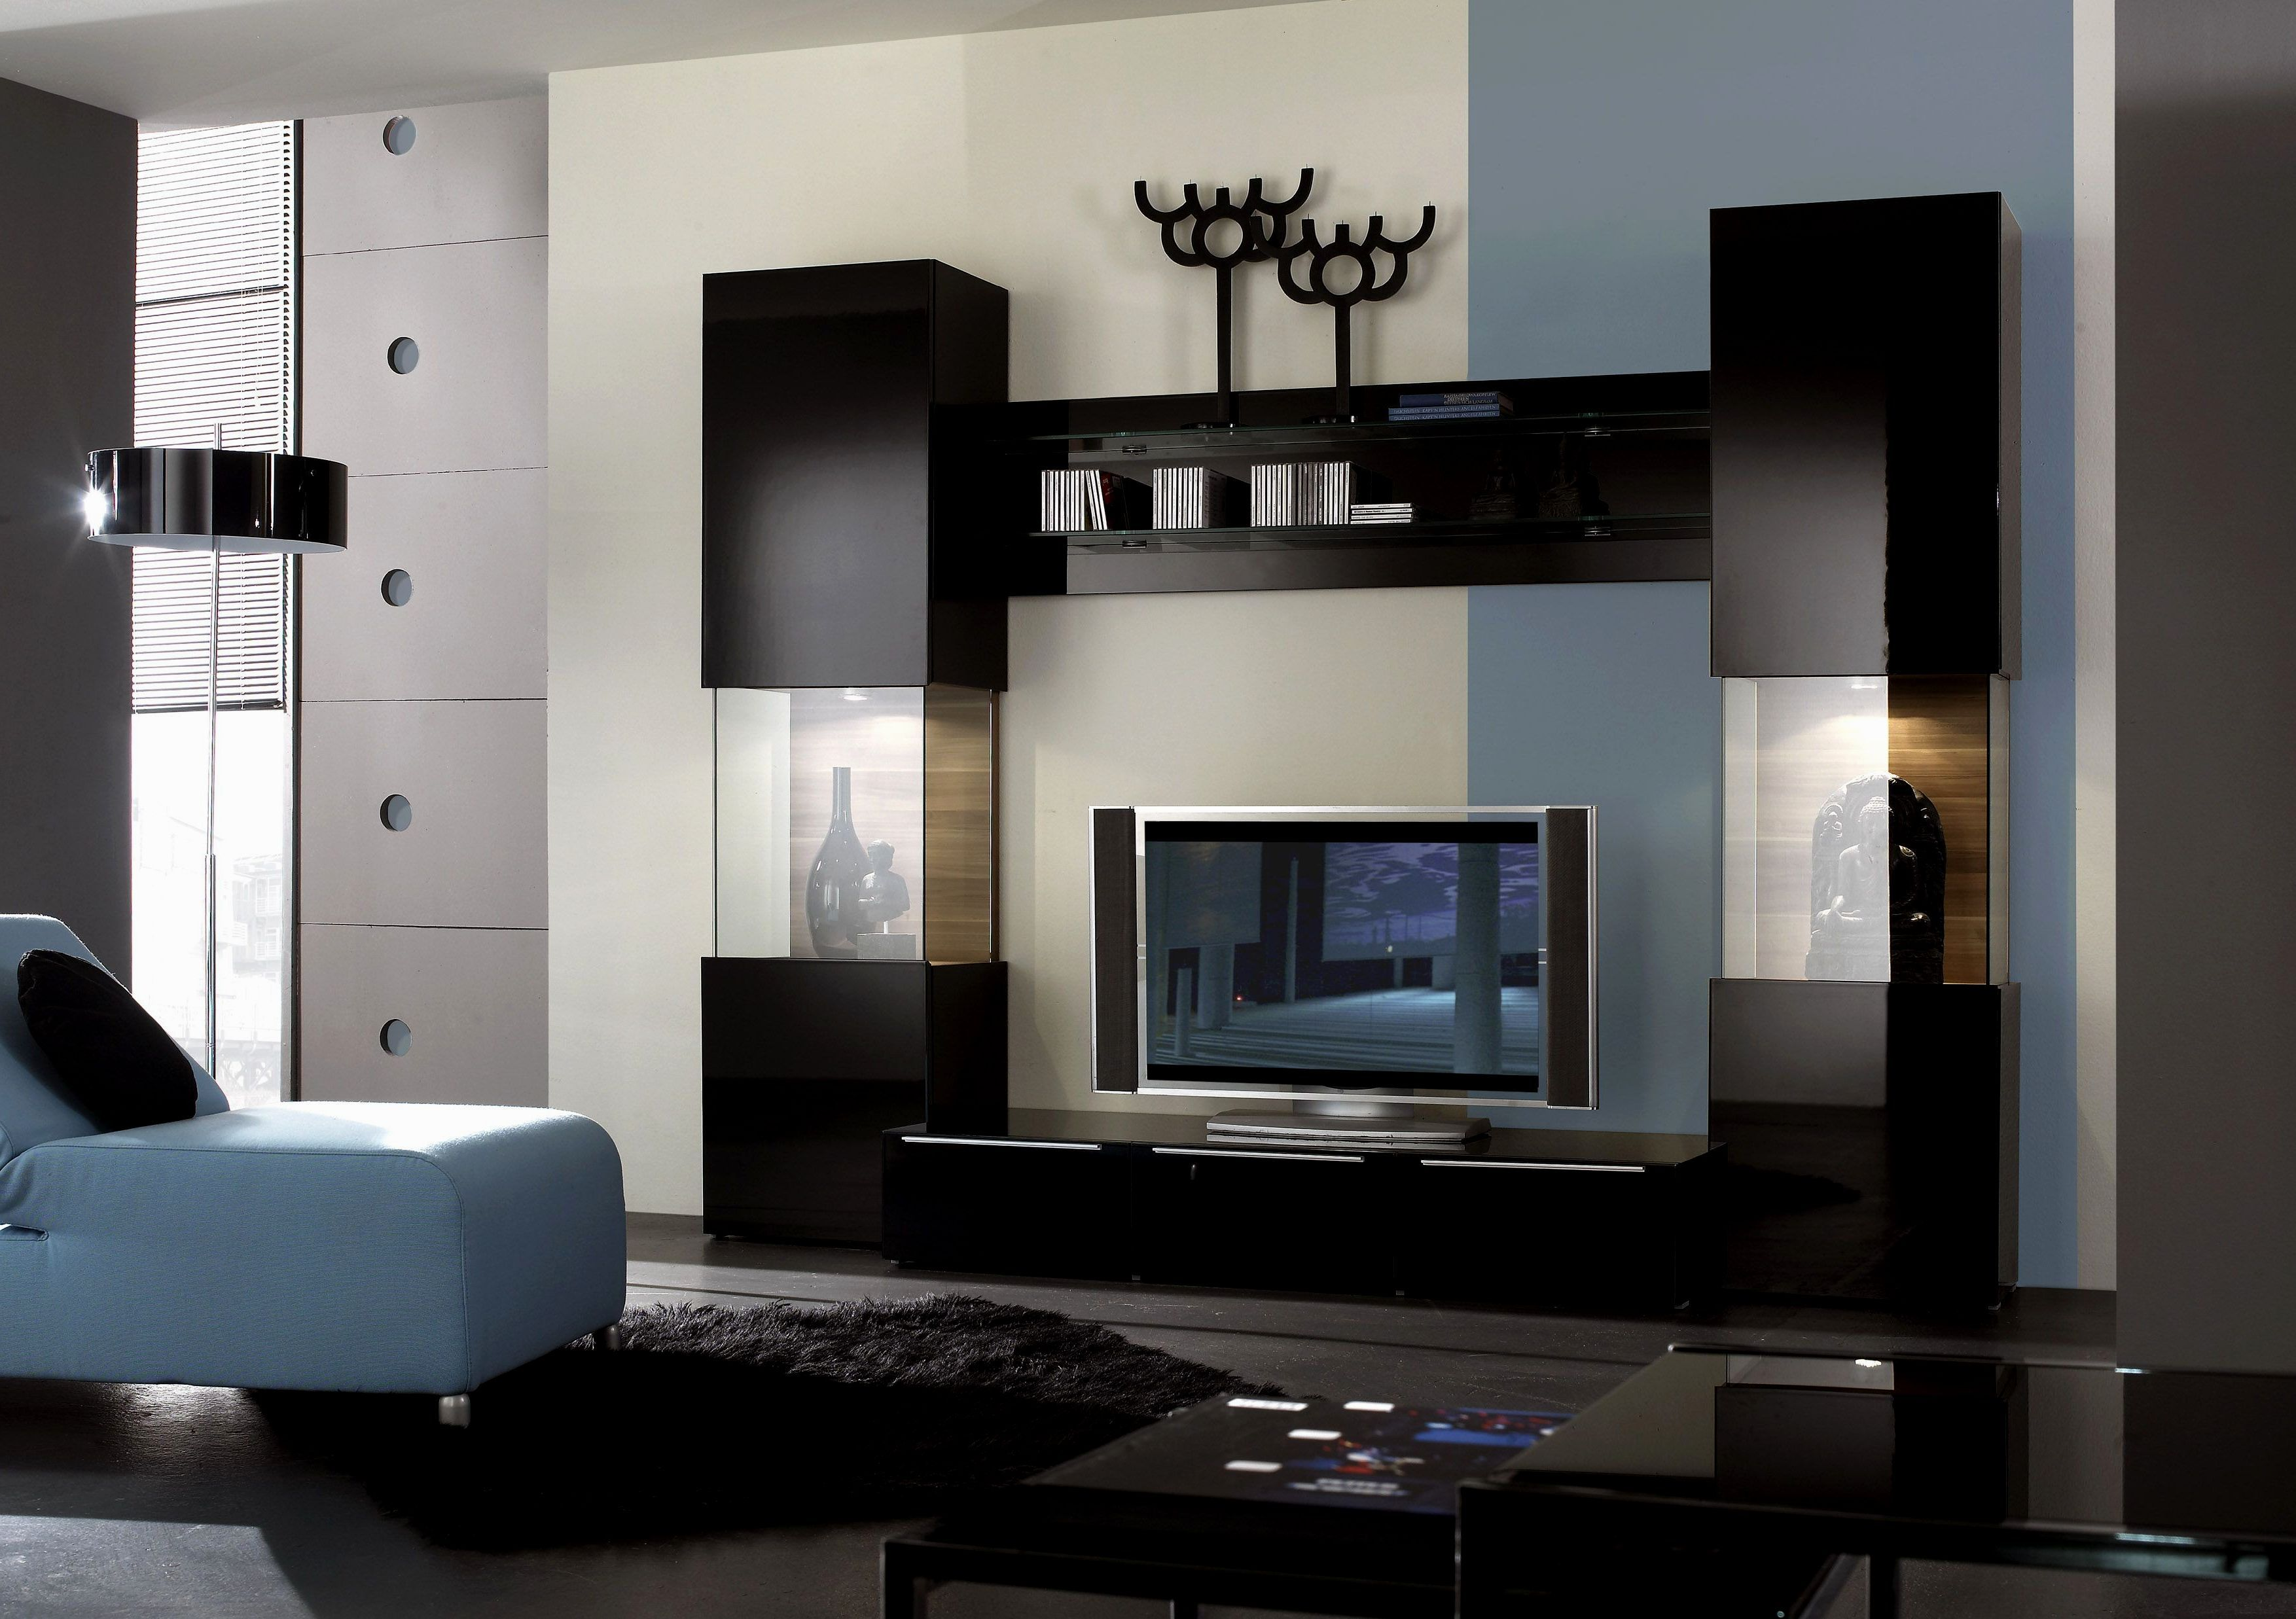 ... Unit Designs Luxury Tv Wall Unit Design Living Room Tv Unit Designs In  The Living Room Storage Cabinets With Doors: New Living Room Cabinet Design  Ideas